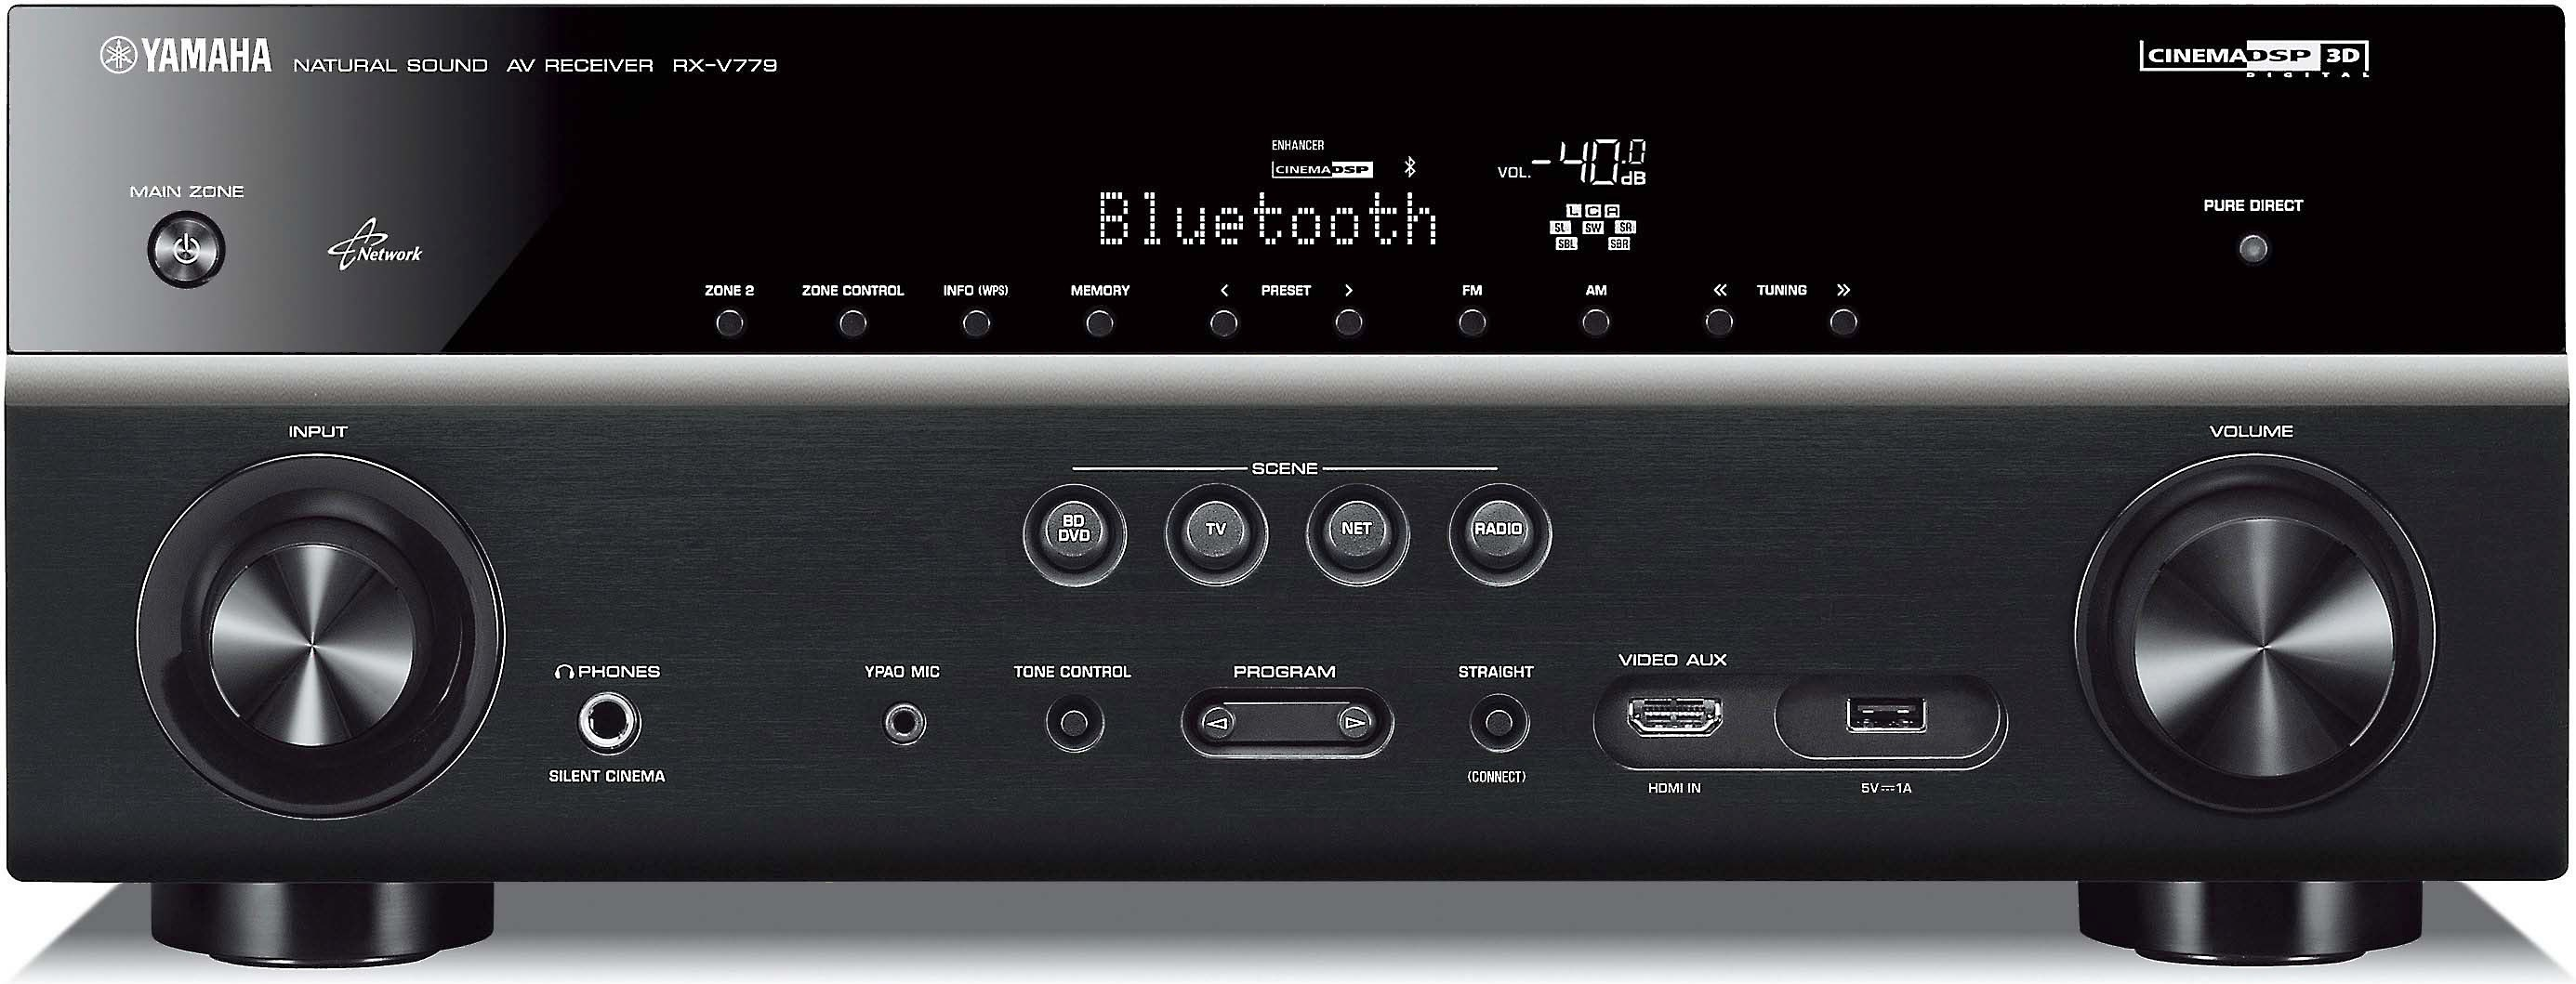 451cba15176 Yamaha RX-V779 7.2-channel home theater receiver with Wi-Fi ...